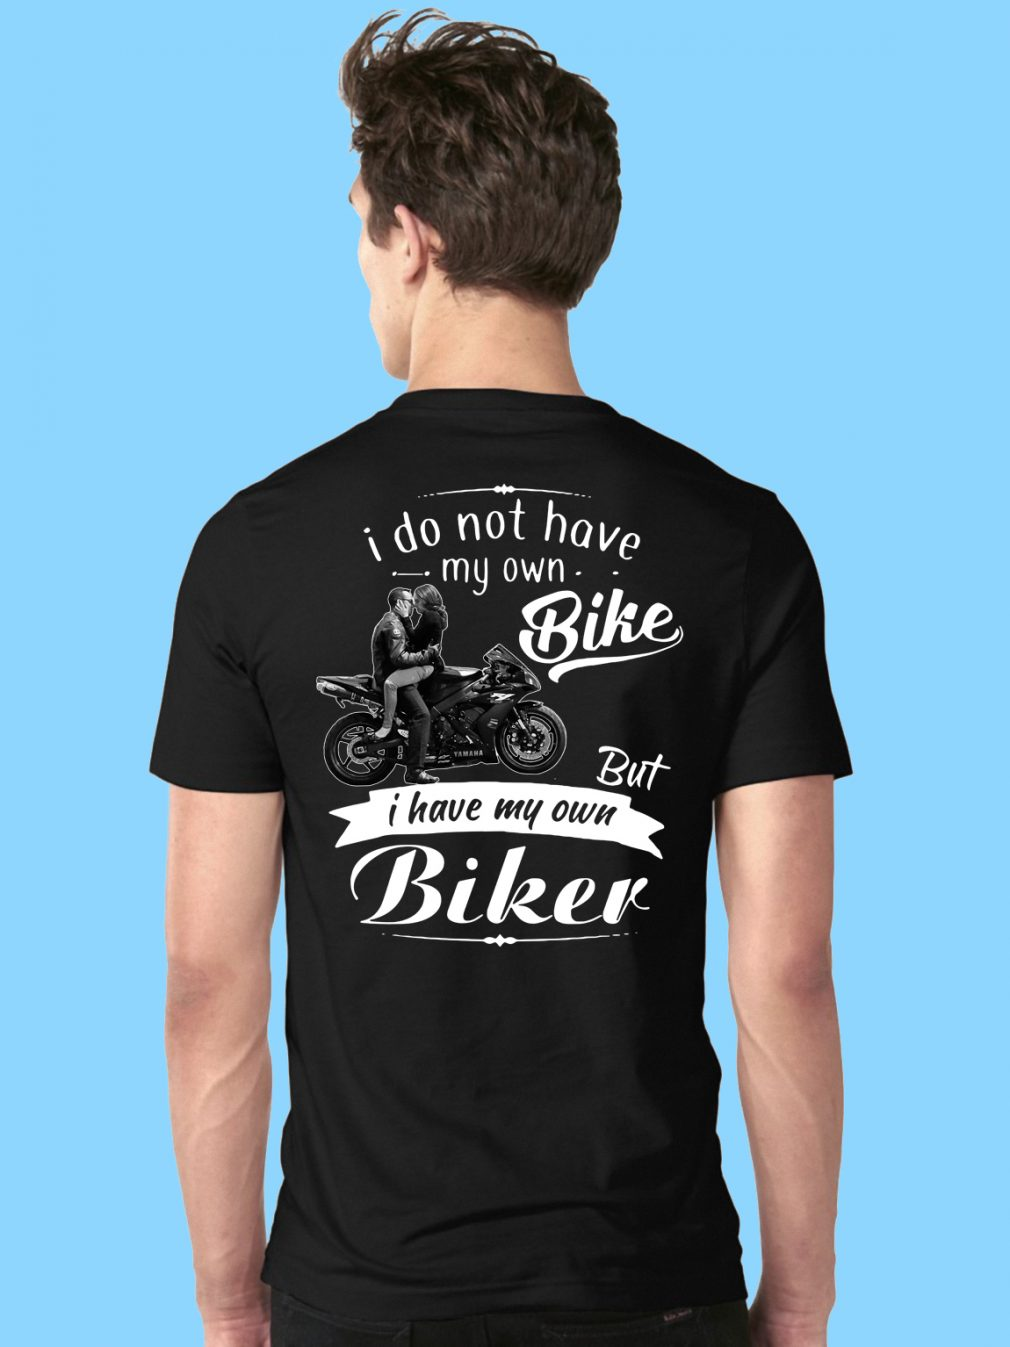 I do not have my own bike but I have my own biker shirt